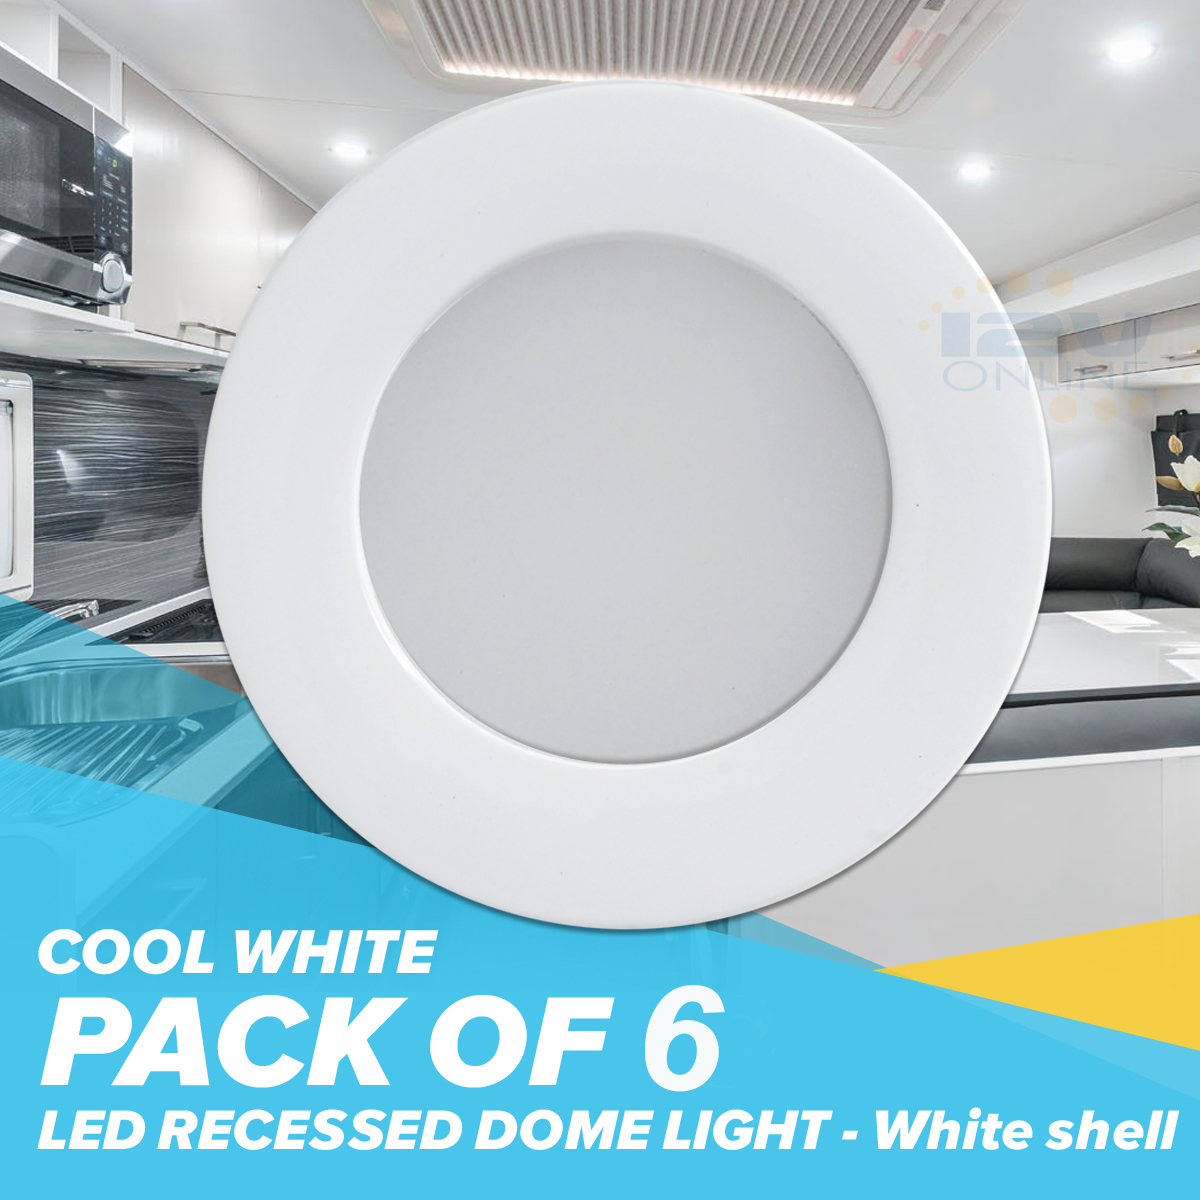 12v Led Under Cabinet Counter Strip Light Rv Camper: 6PCS 12V 70MM White LED Recessed Ceiling Dome Light RV